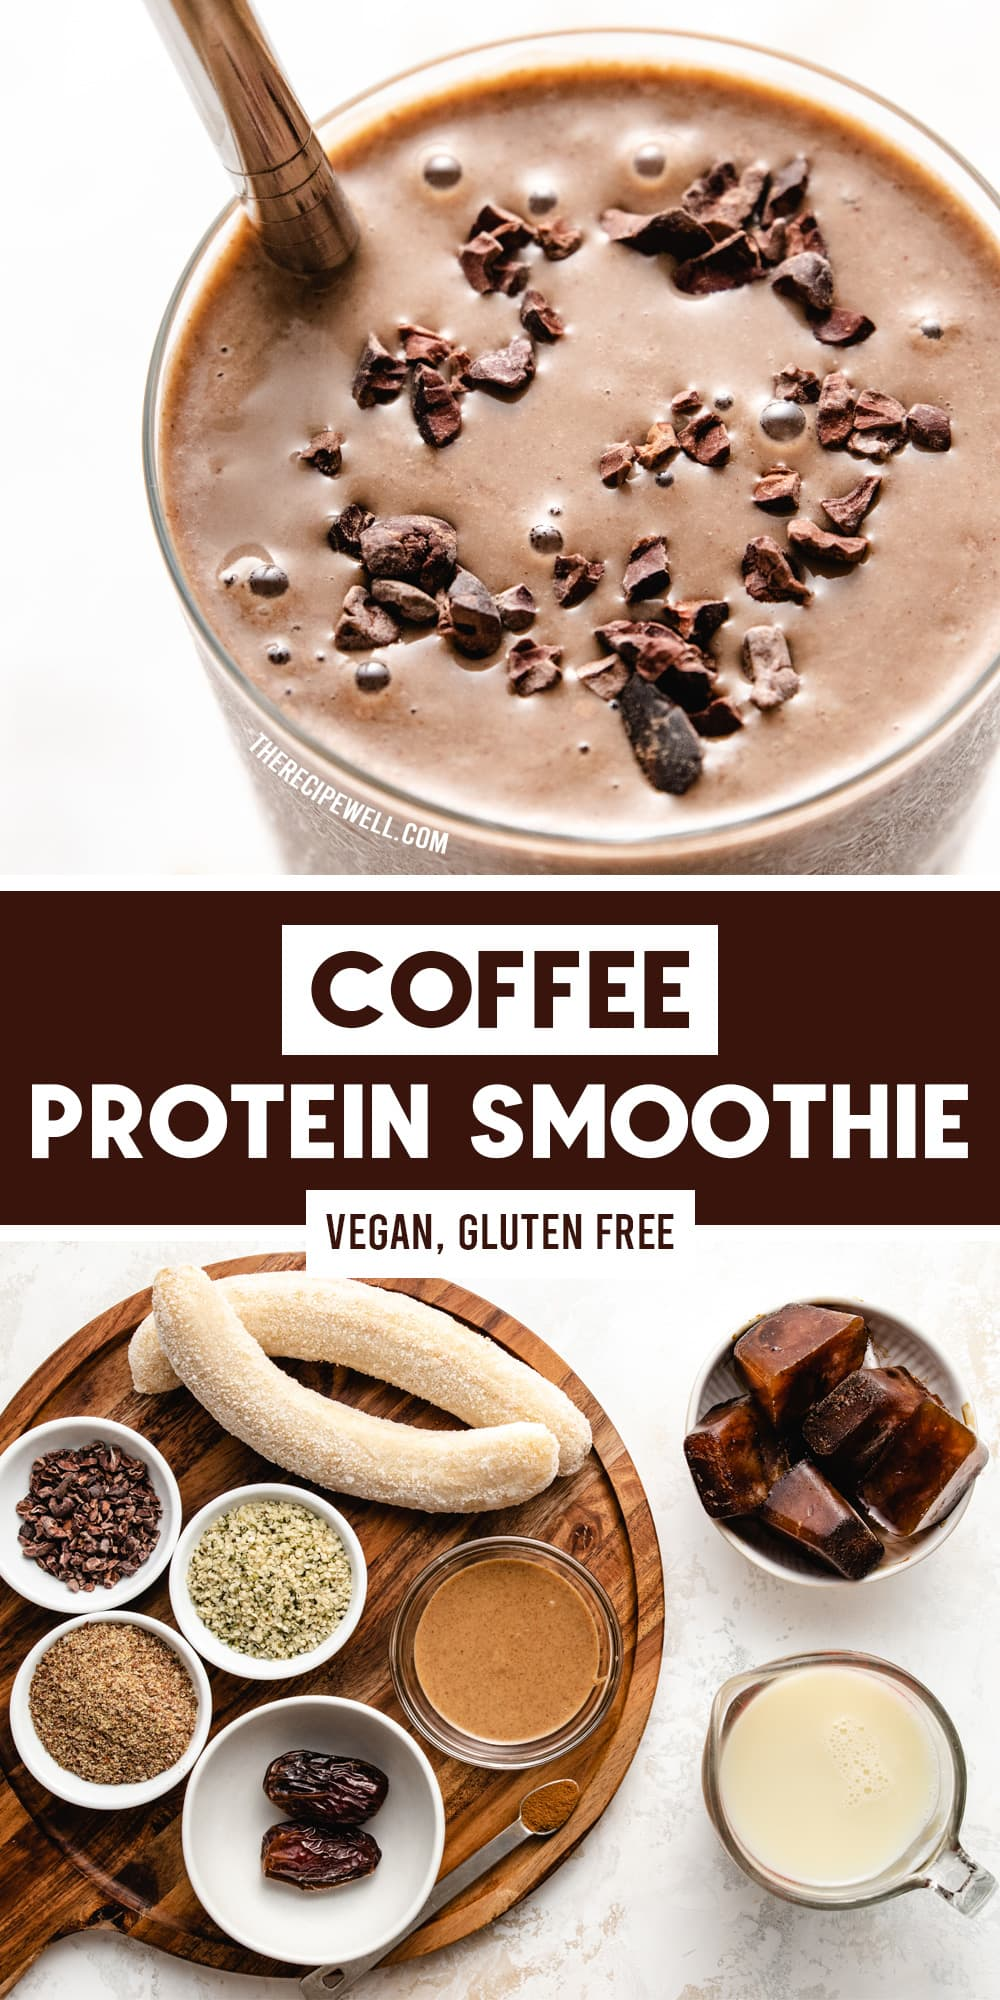 The ultimate smoothie for coffee lovers! This thick and creamy Coffee Protein Smoothie is made with nourishing ingredients like banana, hemp hearts, flax seed and almond butter. It's a delicious on-the-go breakfast! via @therecipewell